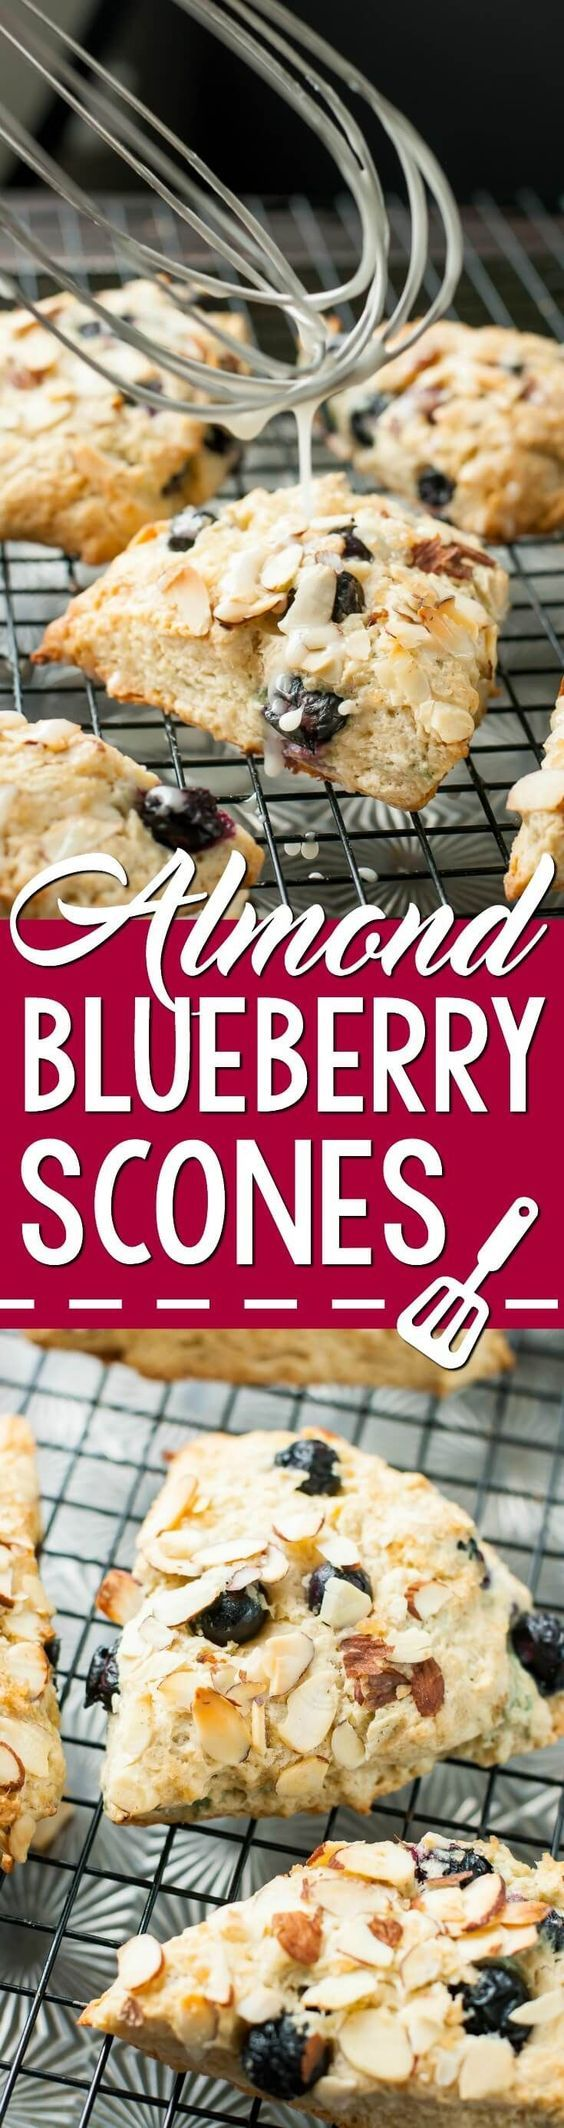 Fluffy, bakery-style almond blueberry scones with a sweet honey-lemon glaze. Surprisingly simple and speedy, they're the perfect compliment to your morning coffee or tea.